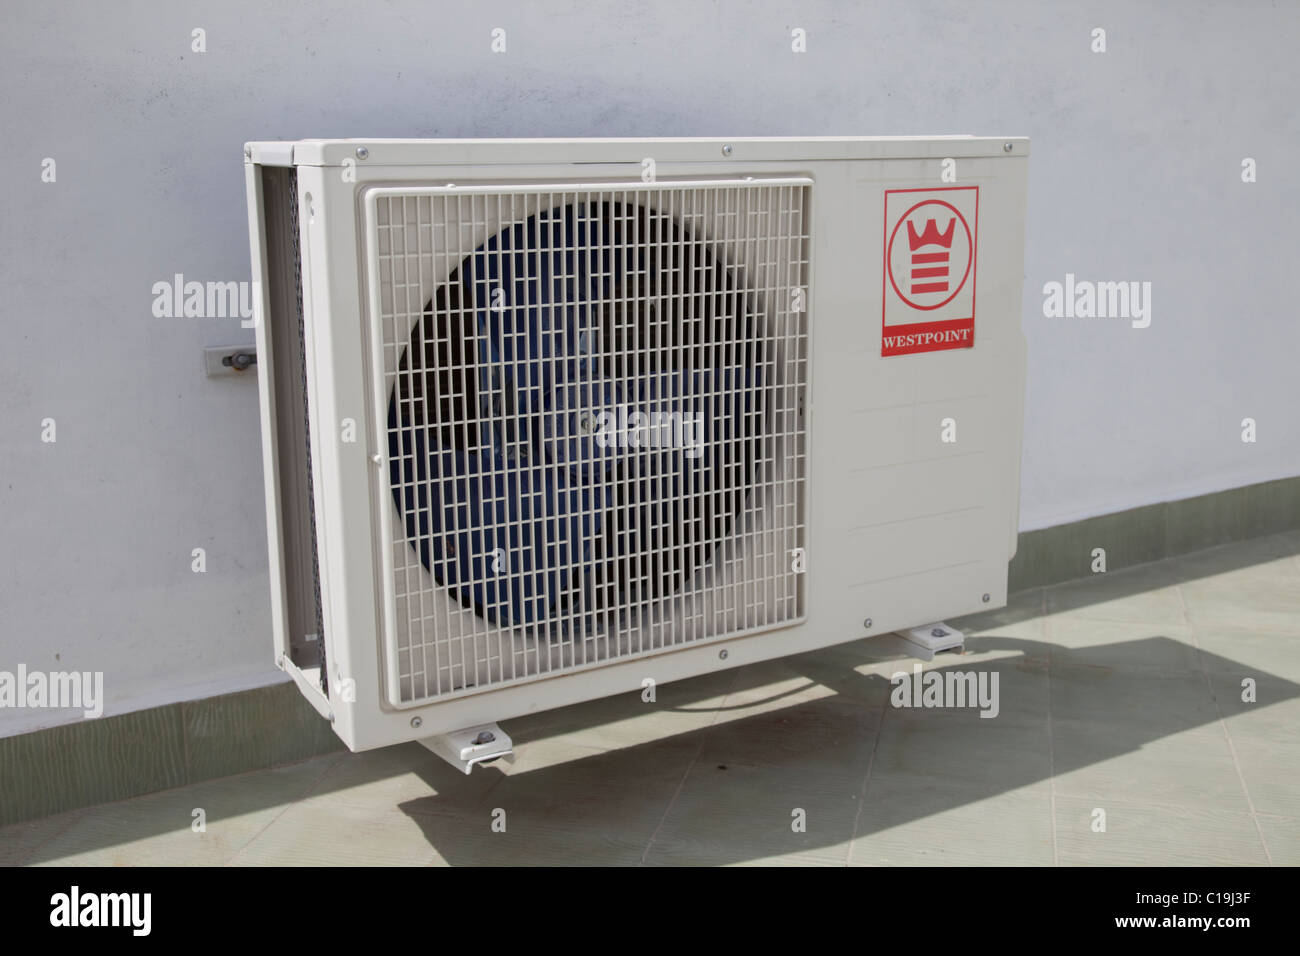 Stock Photo   Westpoint Air Conditioner Unit Mounted On Roof Of House Kenya